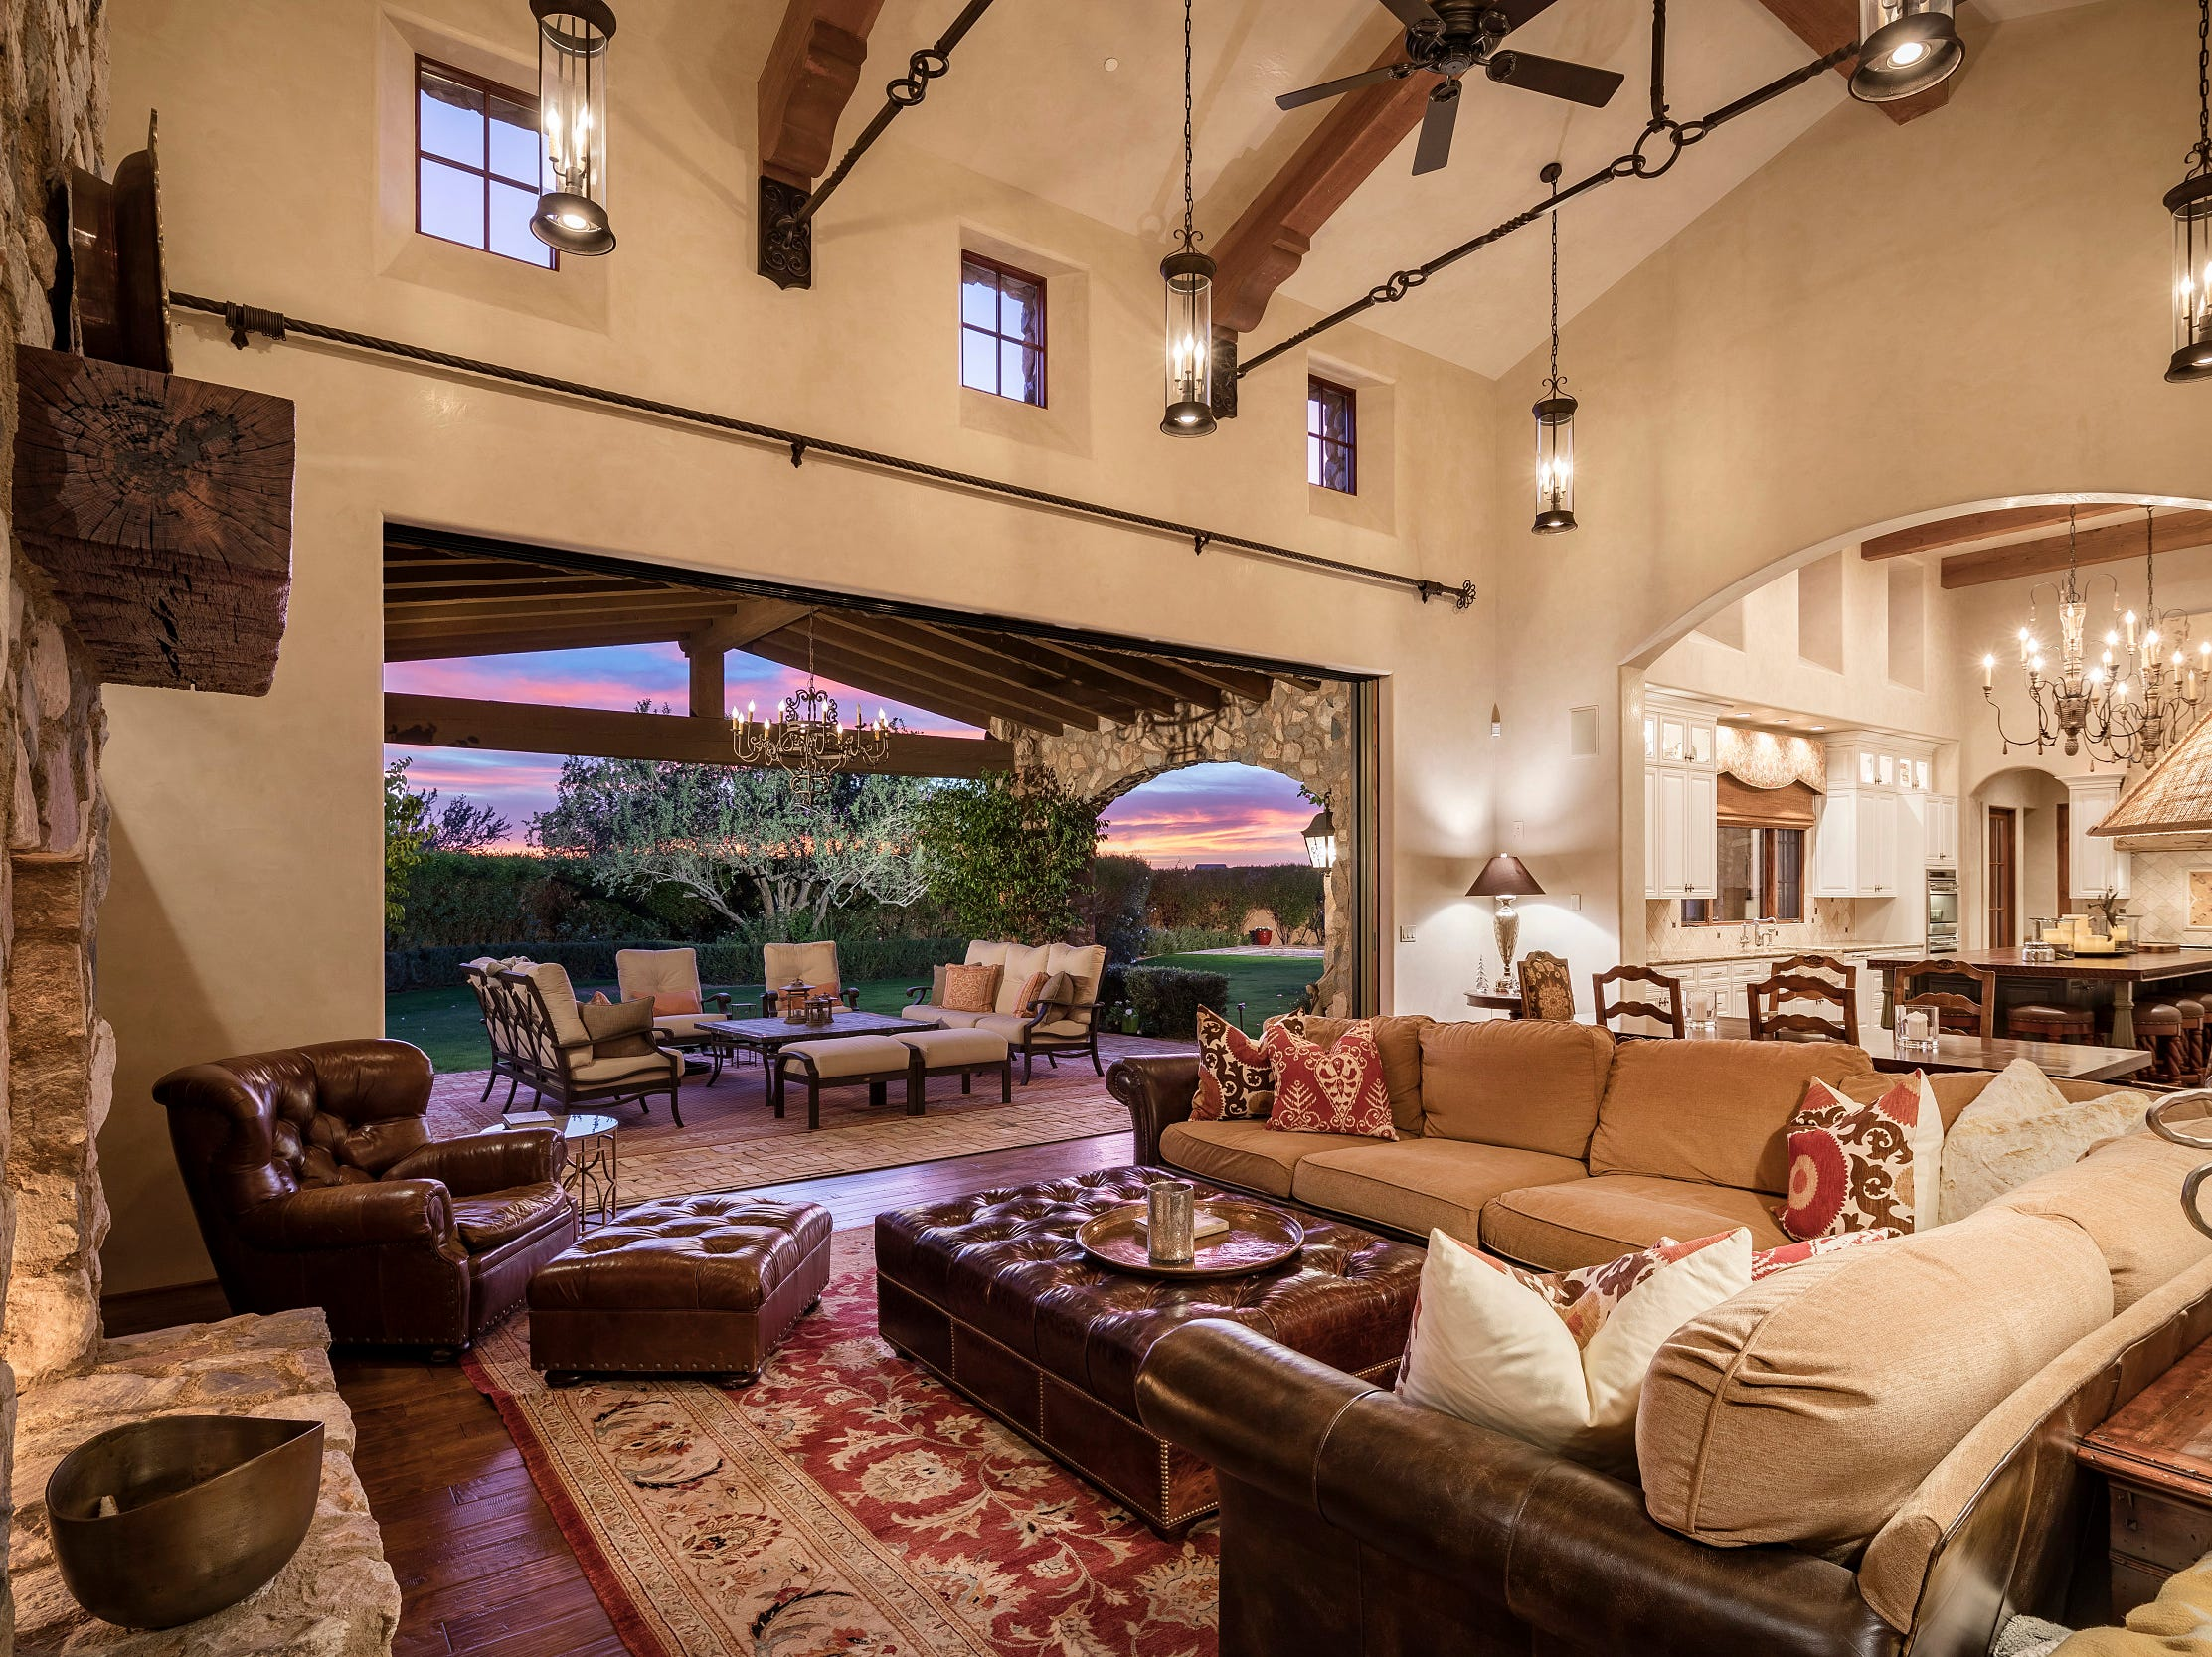 Sherman Ross Crowder, and his wife Greta Gissy, purchased this 6,178-square-foot mansion with 5 bedrooms and 6.5 bathrooms in Scottsdale's Arcadia at Silverleaf community in the Country Club area of DC Ranch.  The Santa Barbara/Tuscan-style house wraps around a center courtyard garden that has direct access to a separate guest house.